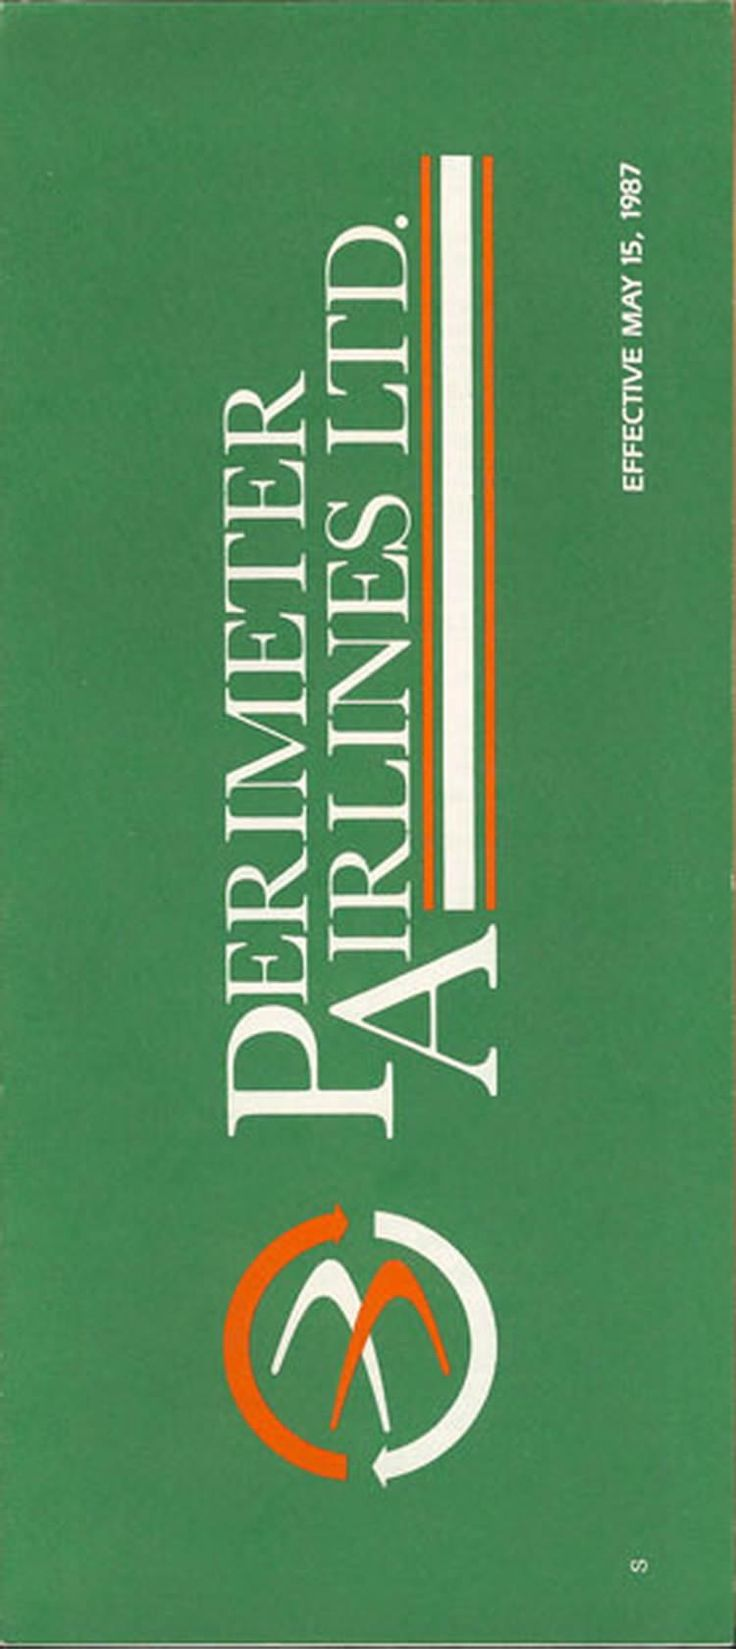 vintage airline timetable for Perimeter Airlines